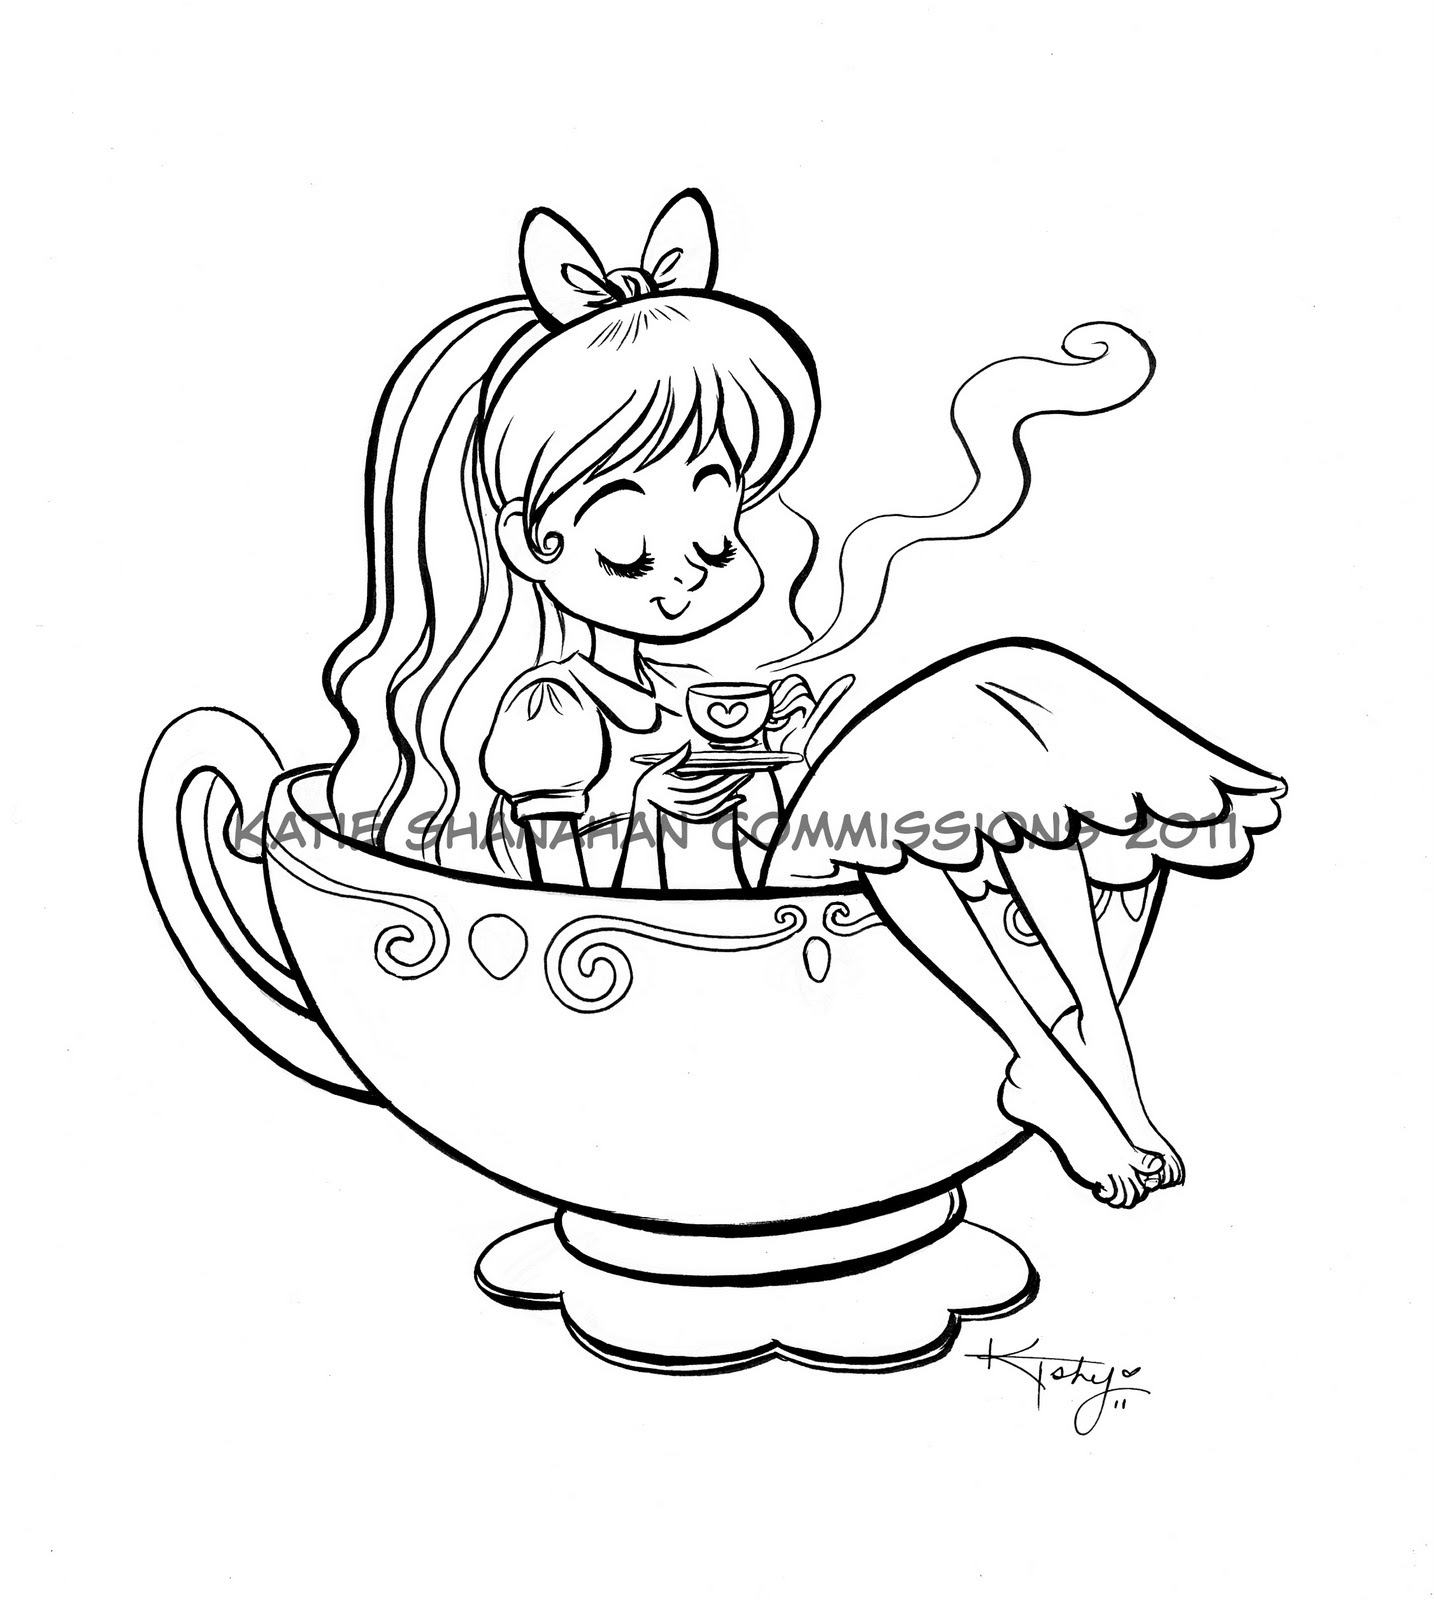 1434x1600 Kt Shy's Sketch Blog! Commission Alice In A Tea Cup